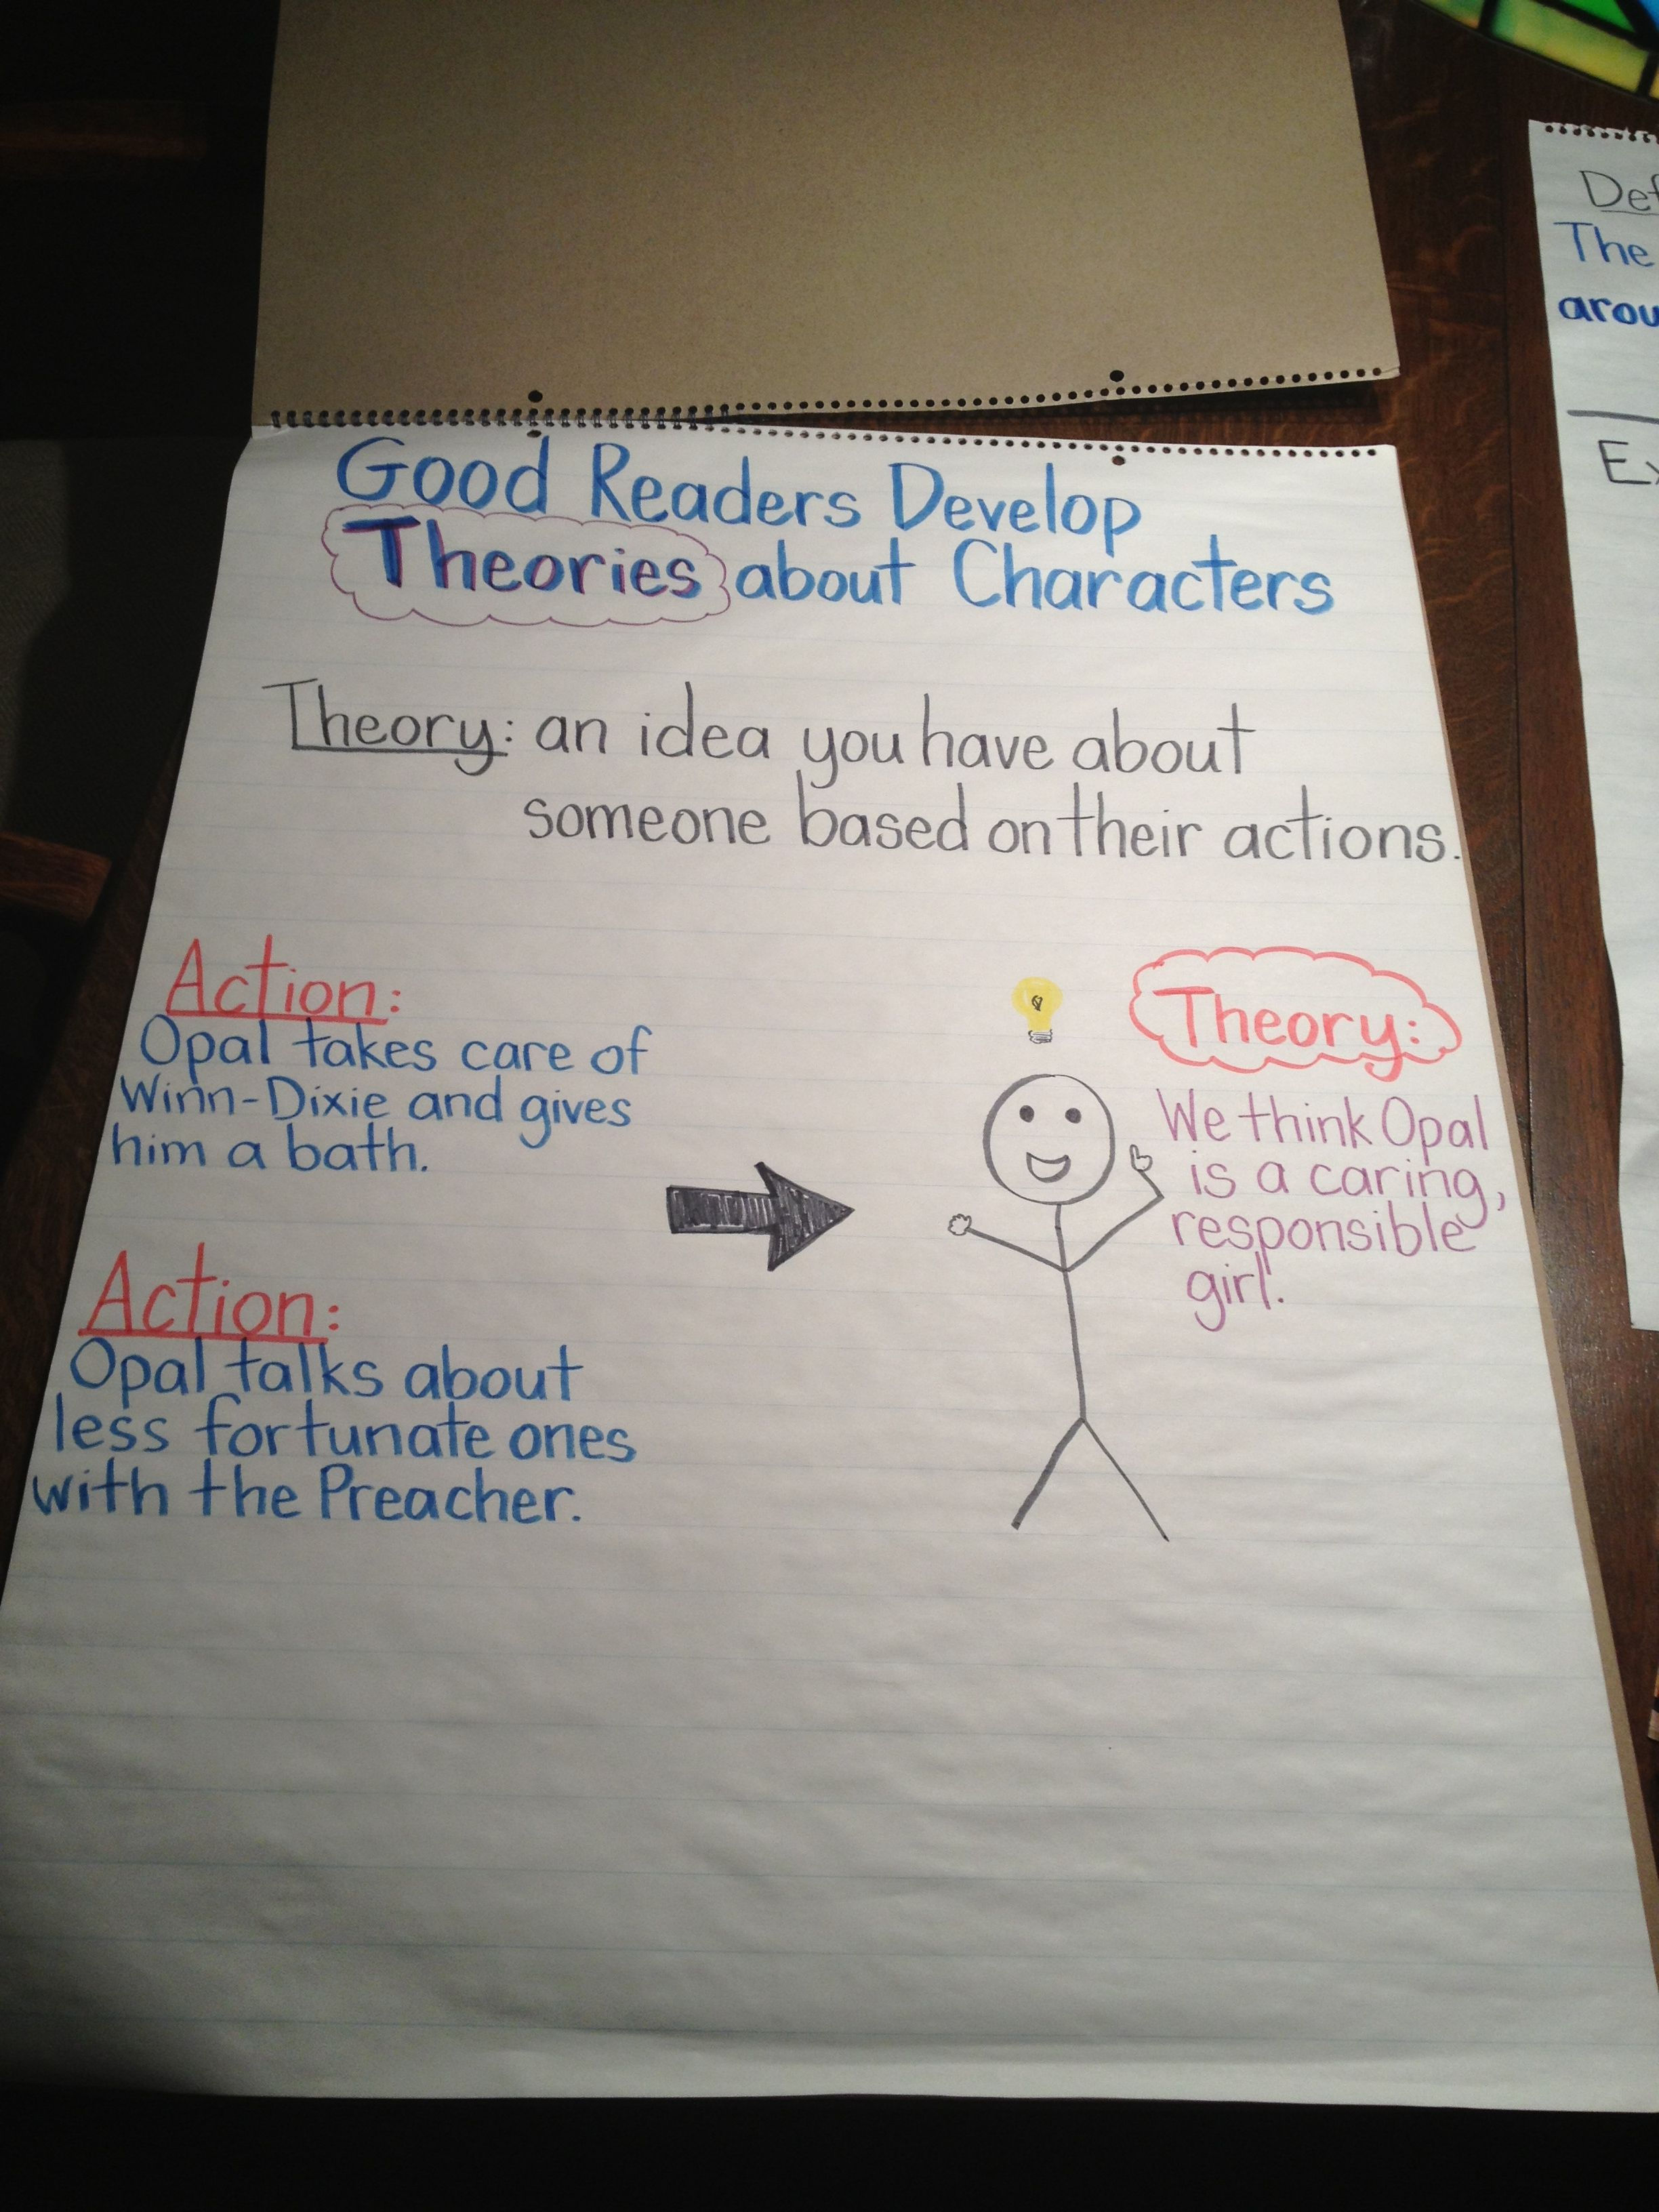 Character Theories